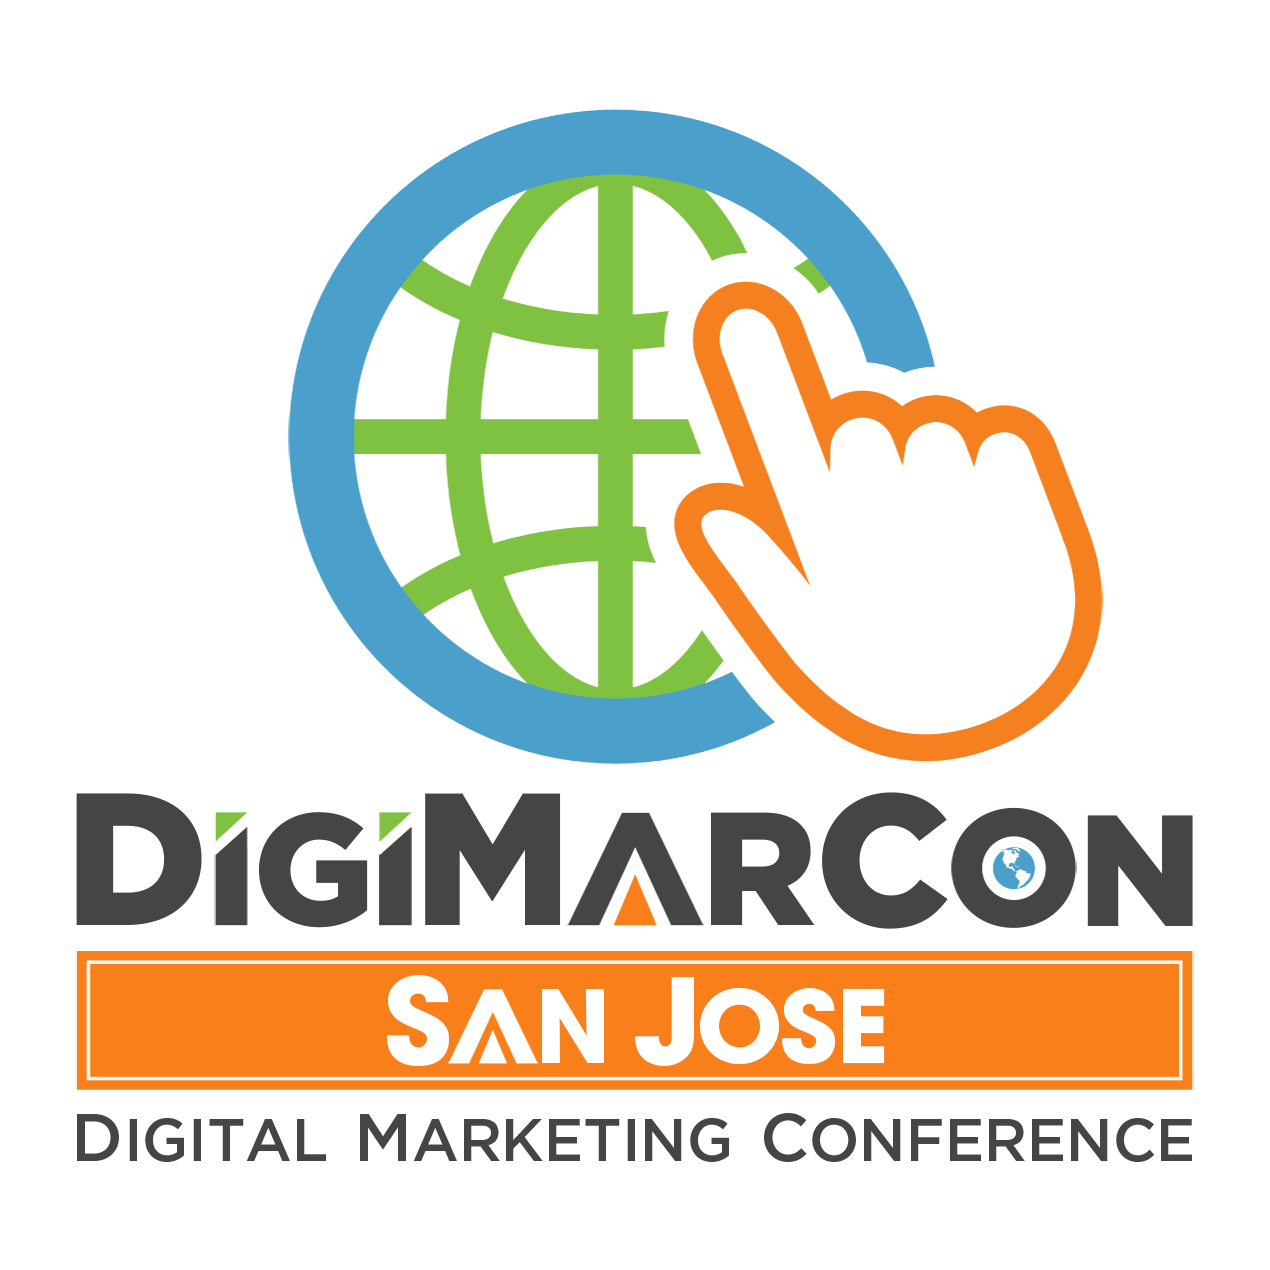 San Jose Digital Marketing, Media & Advertising Conference